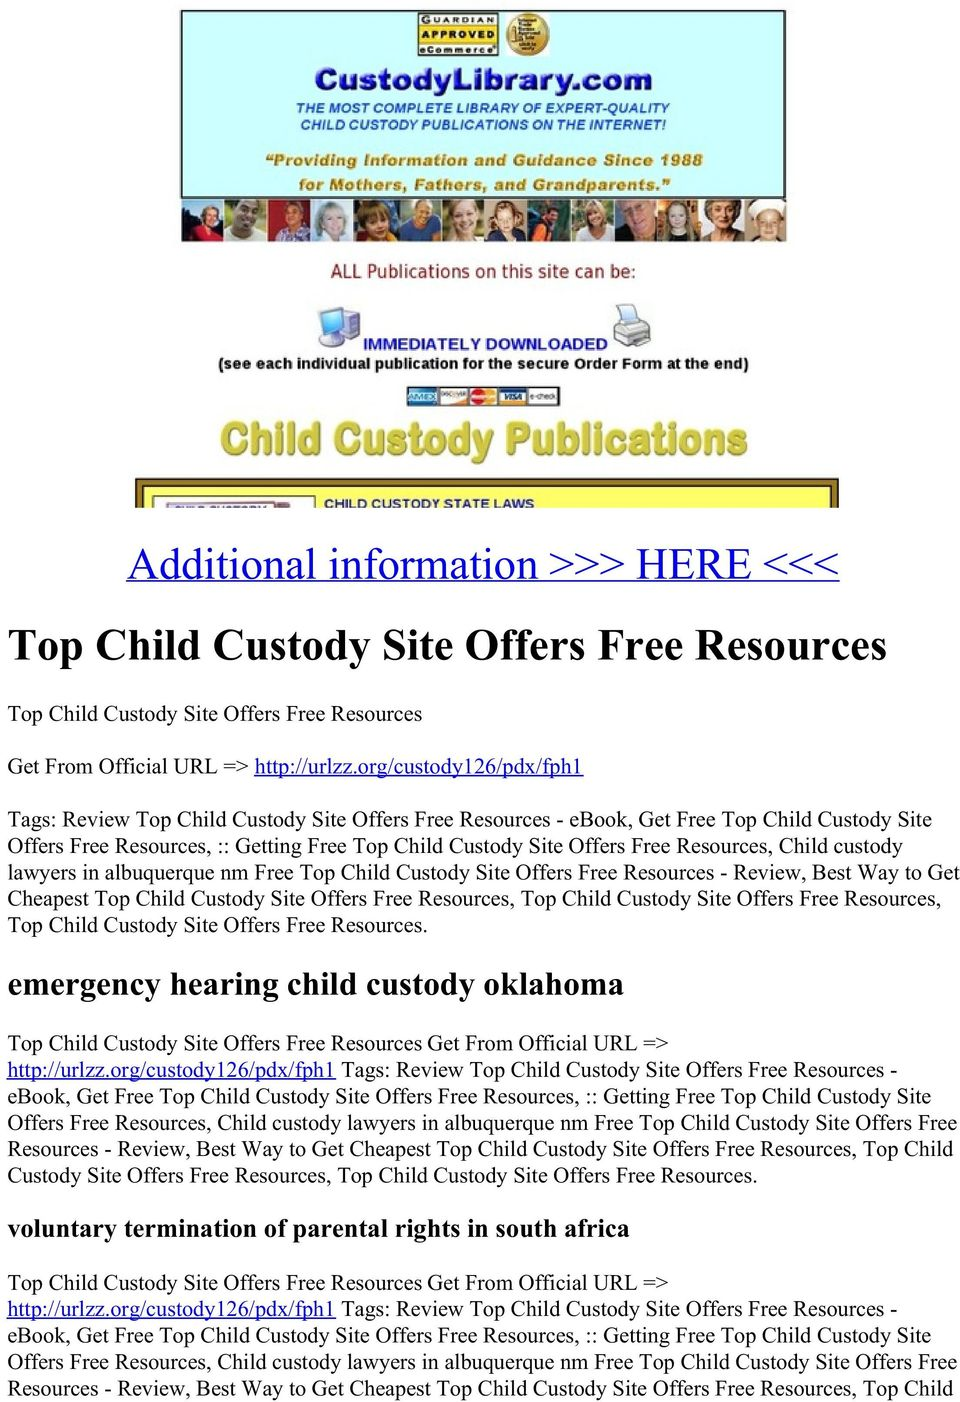 Warren County Ohio Child Custody Forms